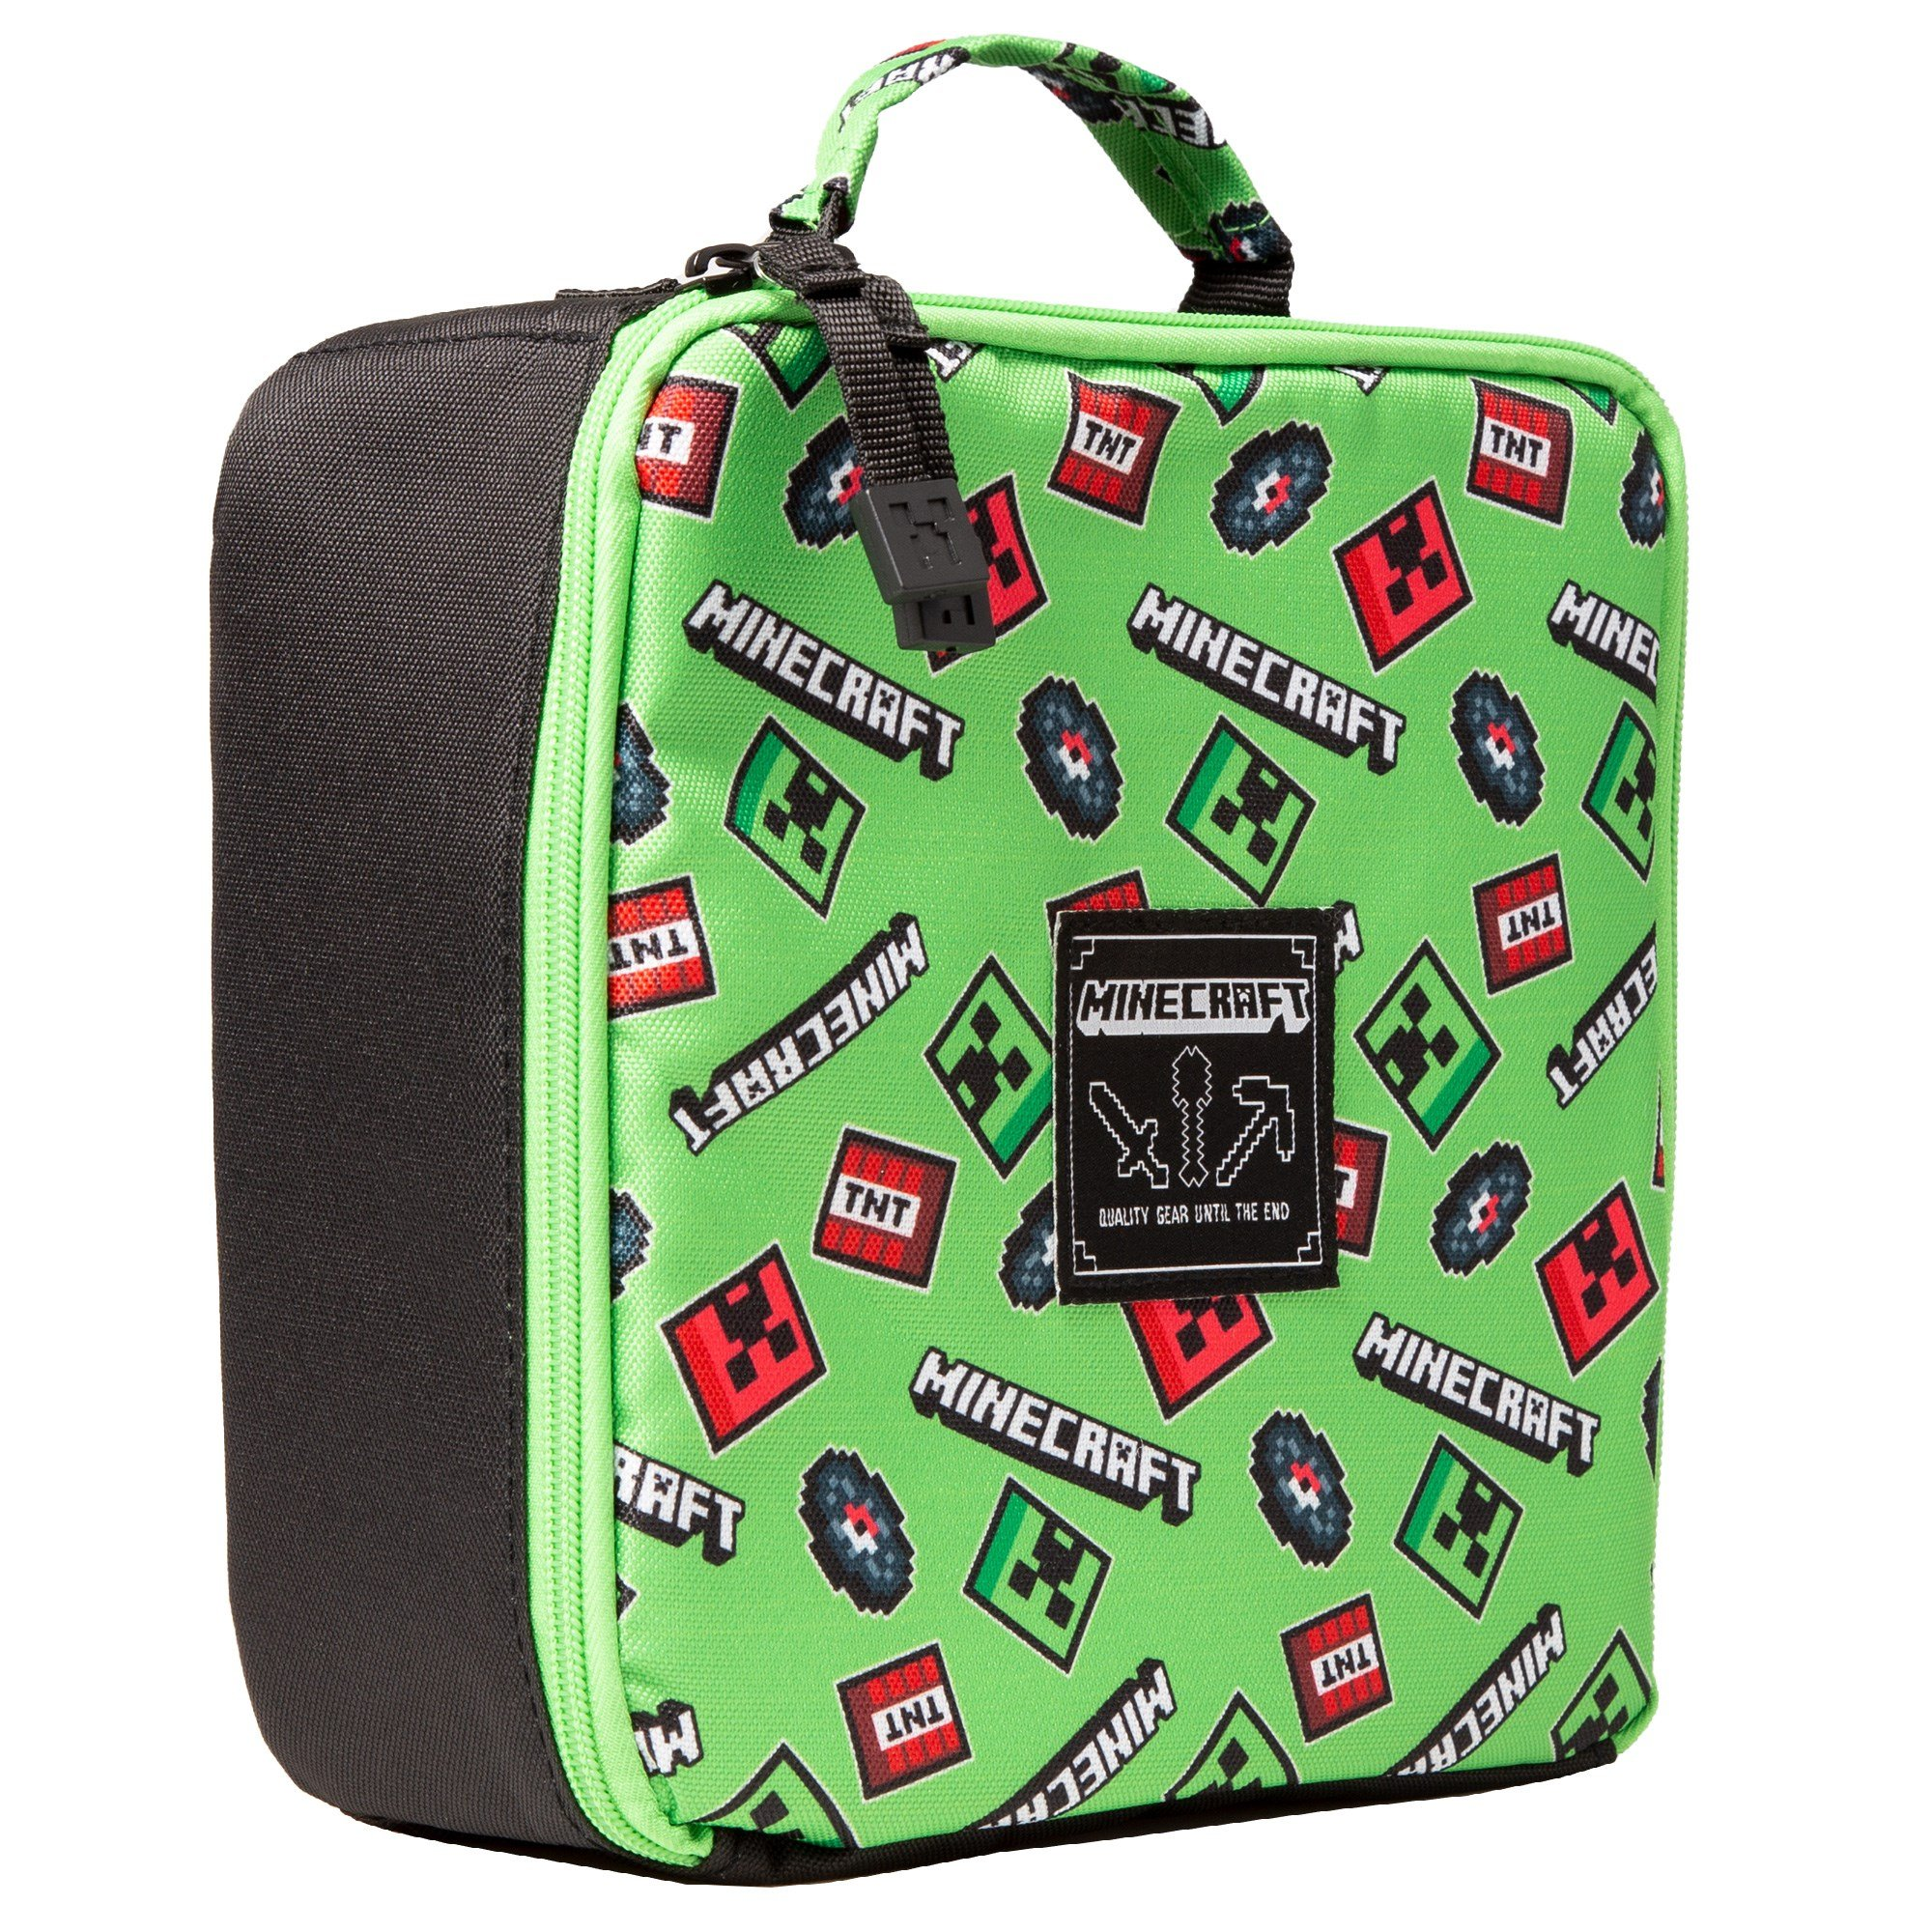 JINX Minecraft Scatter Creeper Insulated Lunch Bag (Green) (Green, 8.5''x 4'')